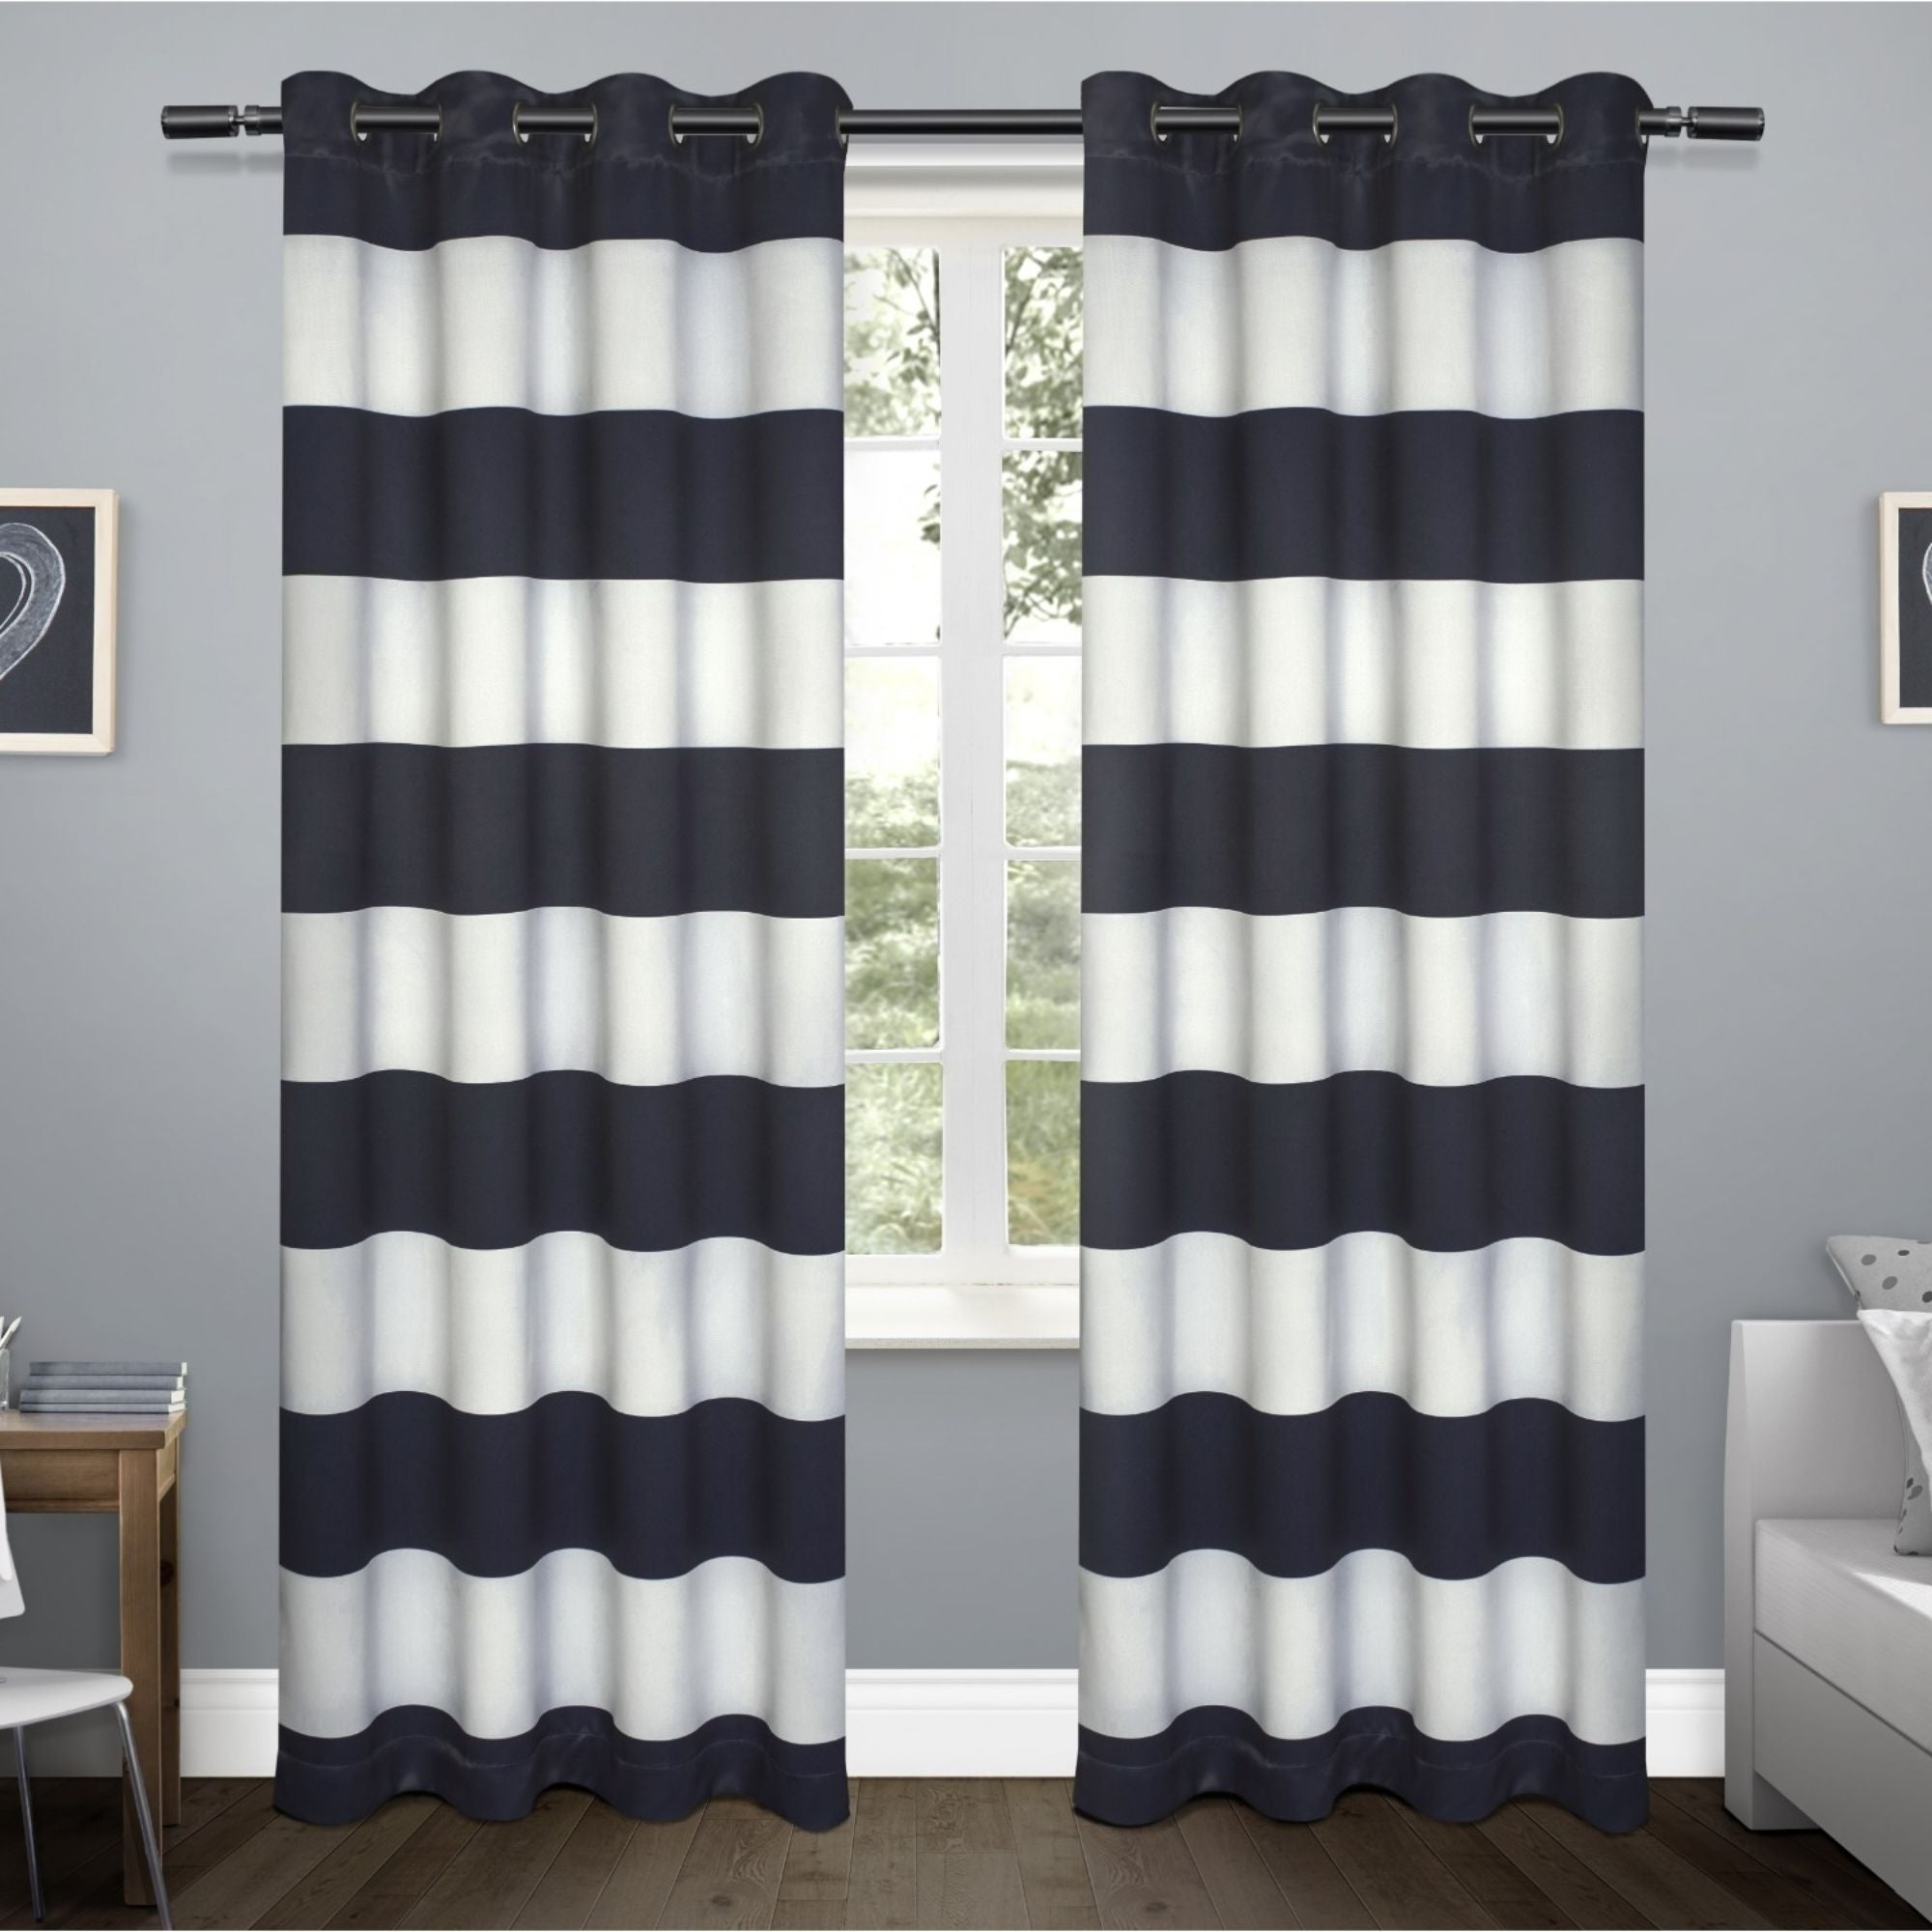 Recent Woven Blackout Curtain Panel Pairs With Grommet Top With Regard To Copper Grove Chirpan Sateen Woven Blackout Grommet Top Curtain Panel Pair (Gallery 15 of 20)